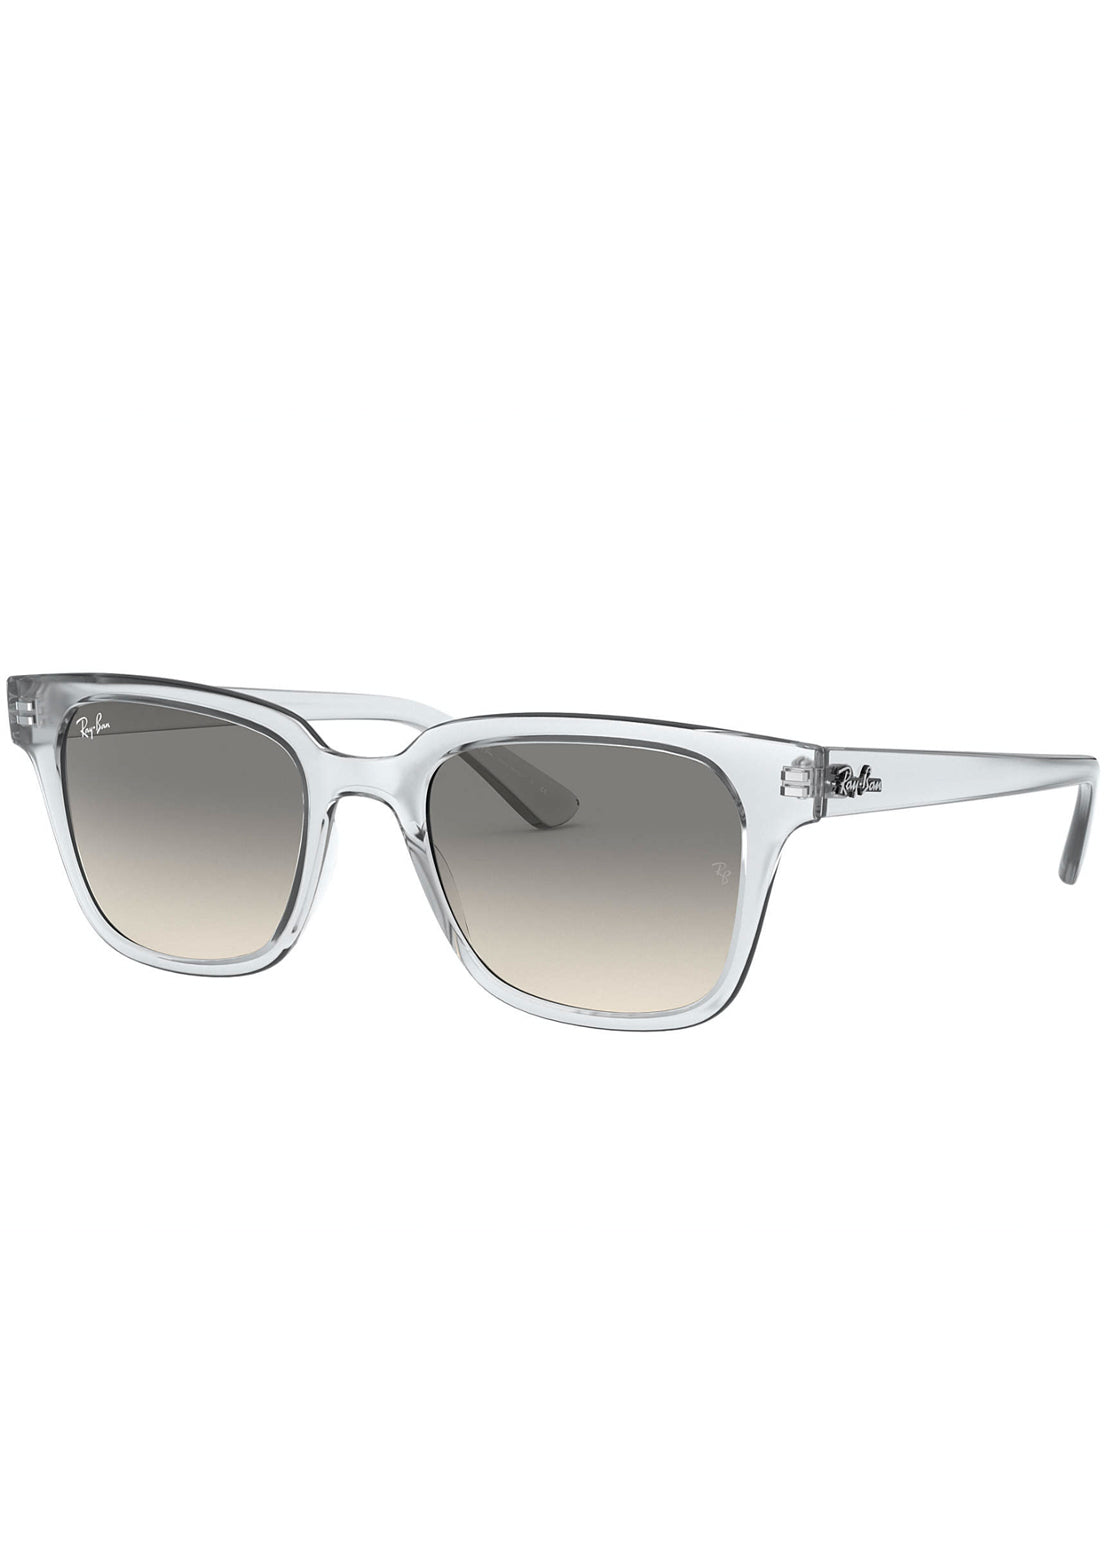 Ray-Ban RB4323 Sunglasses Nylon Transparent/Light Grey Gradient